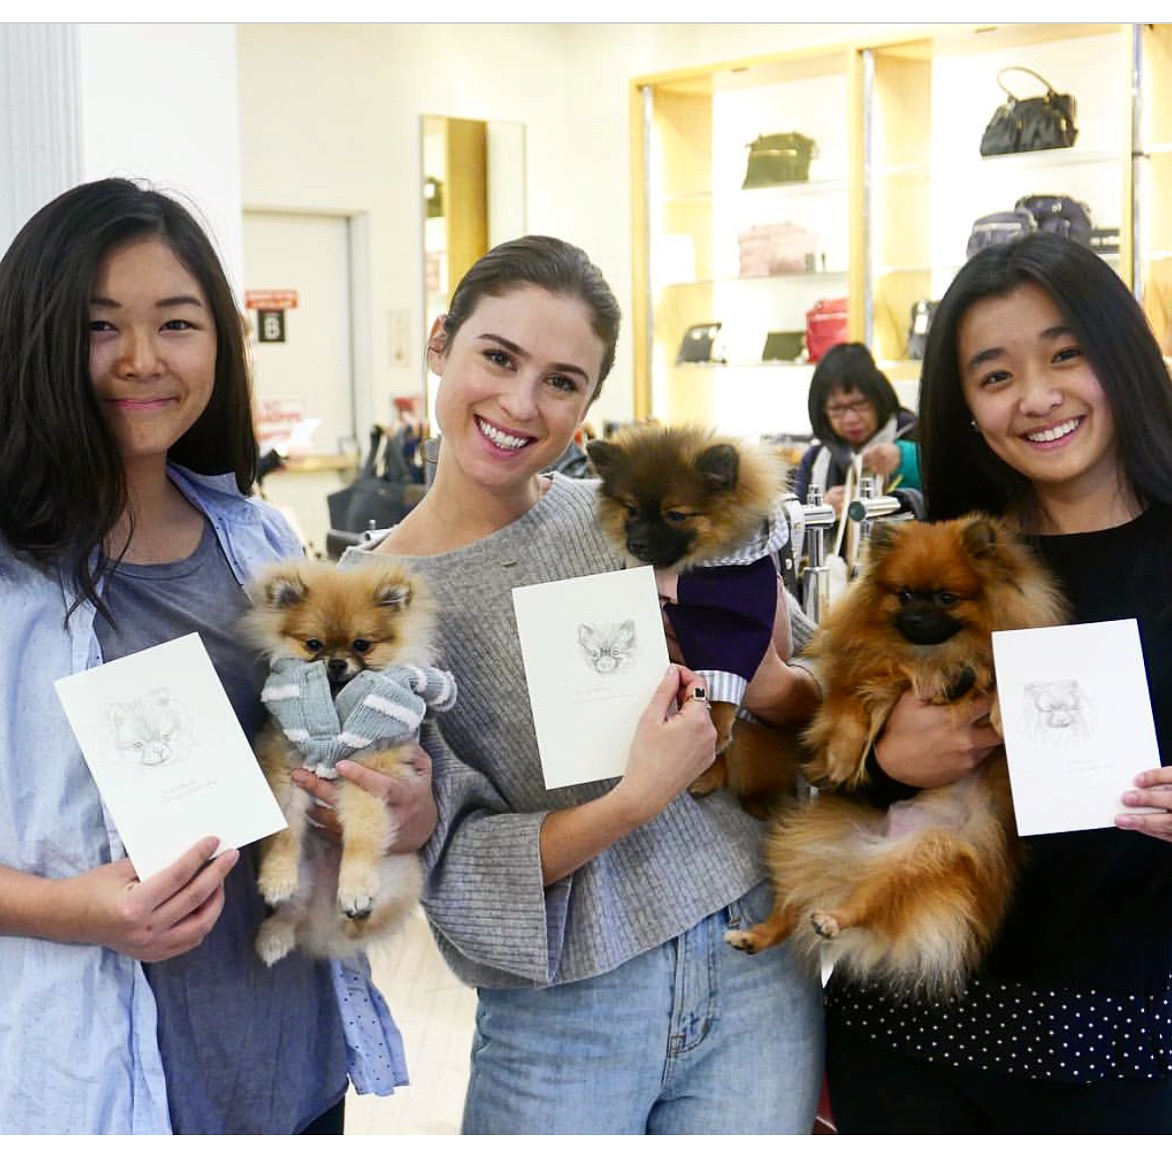 Carrie with owners and pups, after receiving their personal sketches at the Love Thy Beast Event at Bloomingdales Soho location in NYC